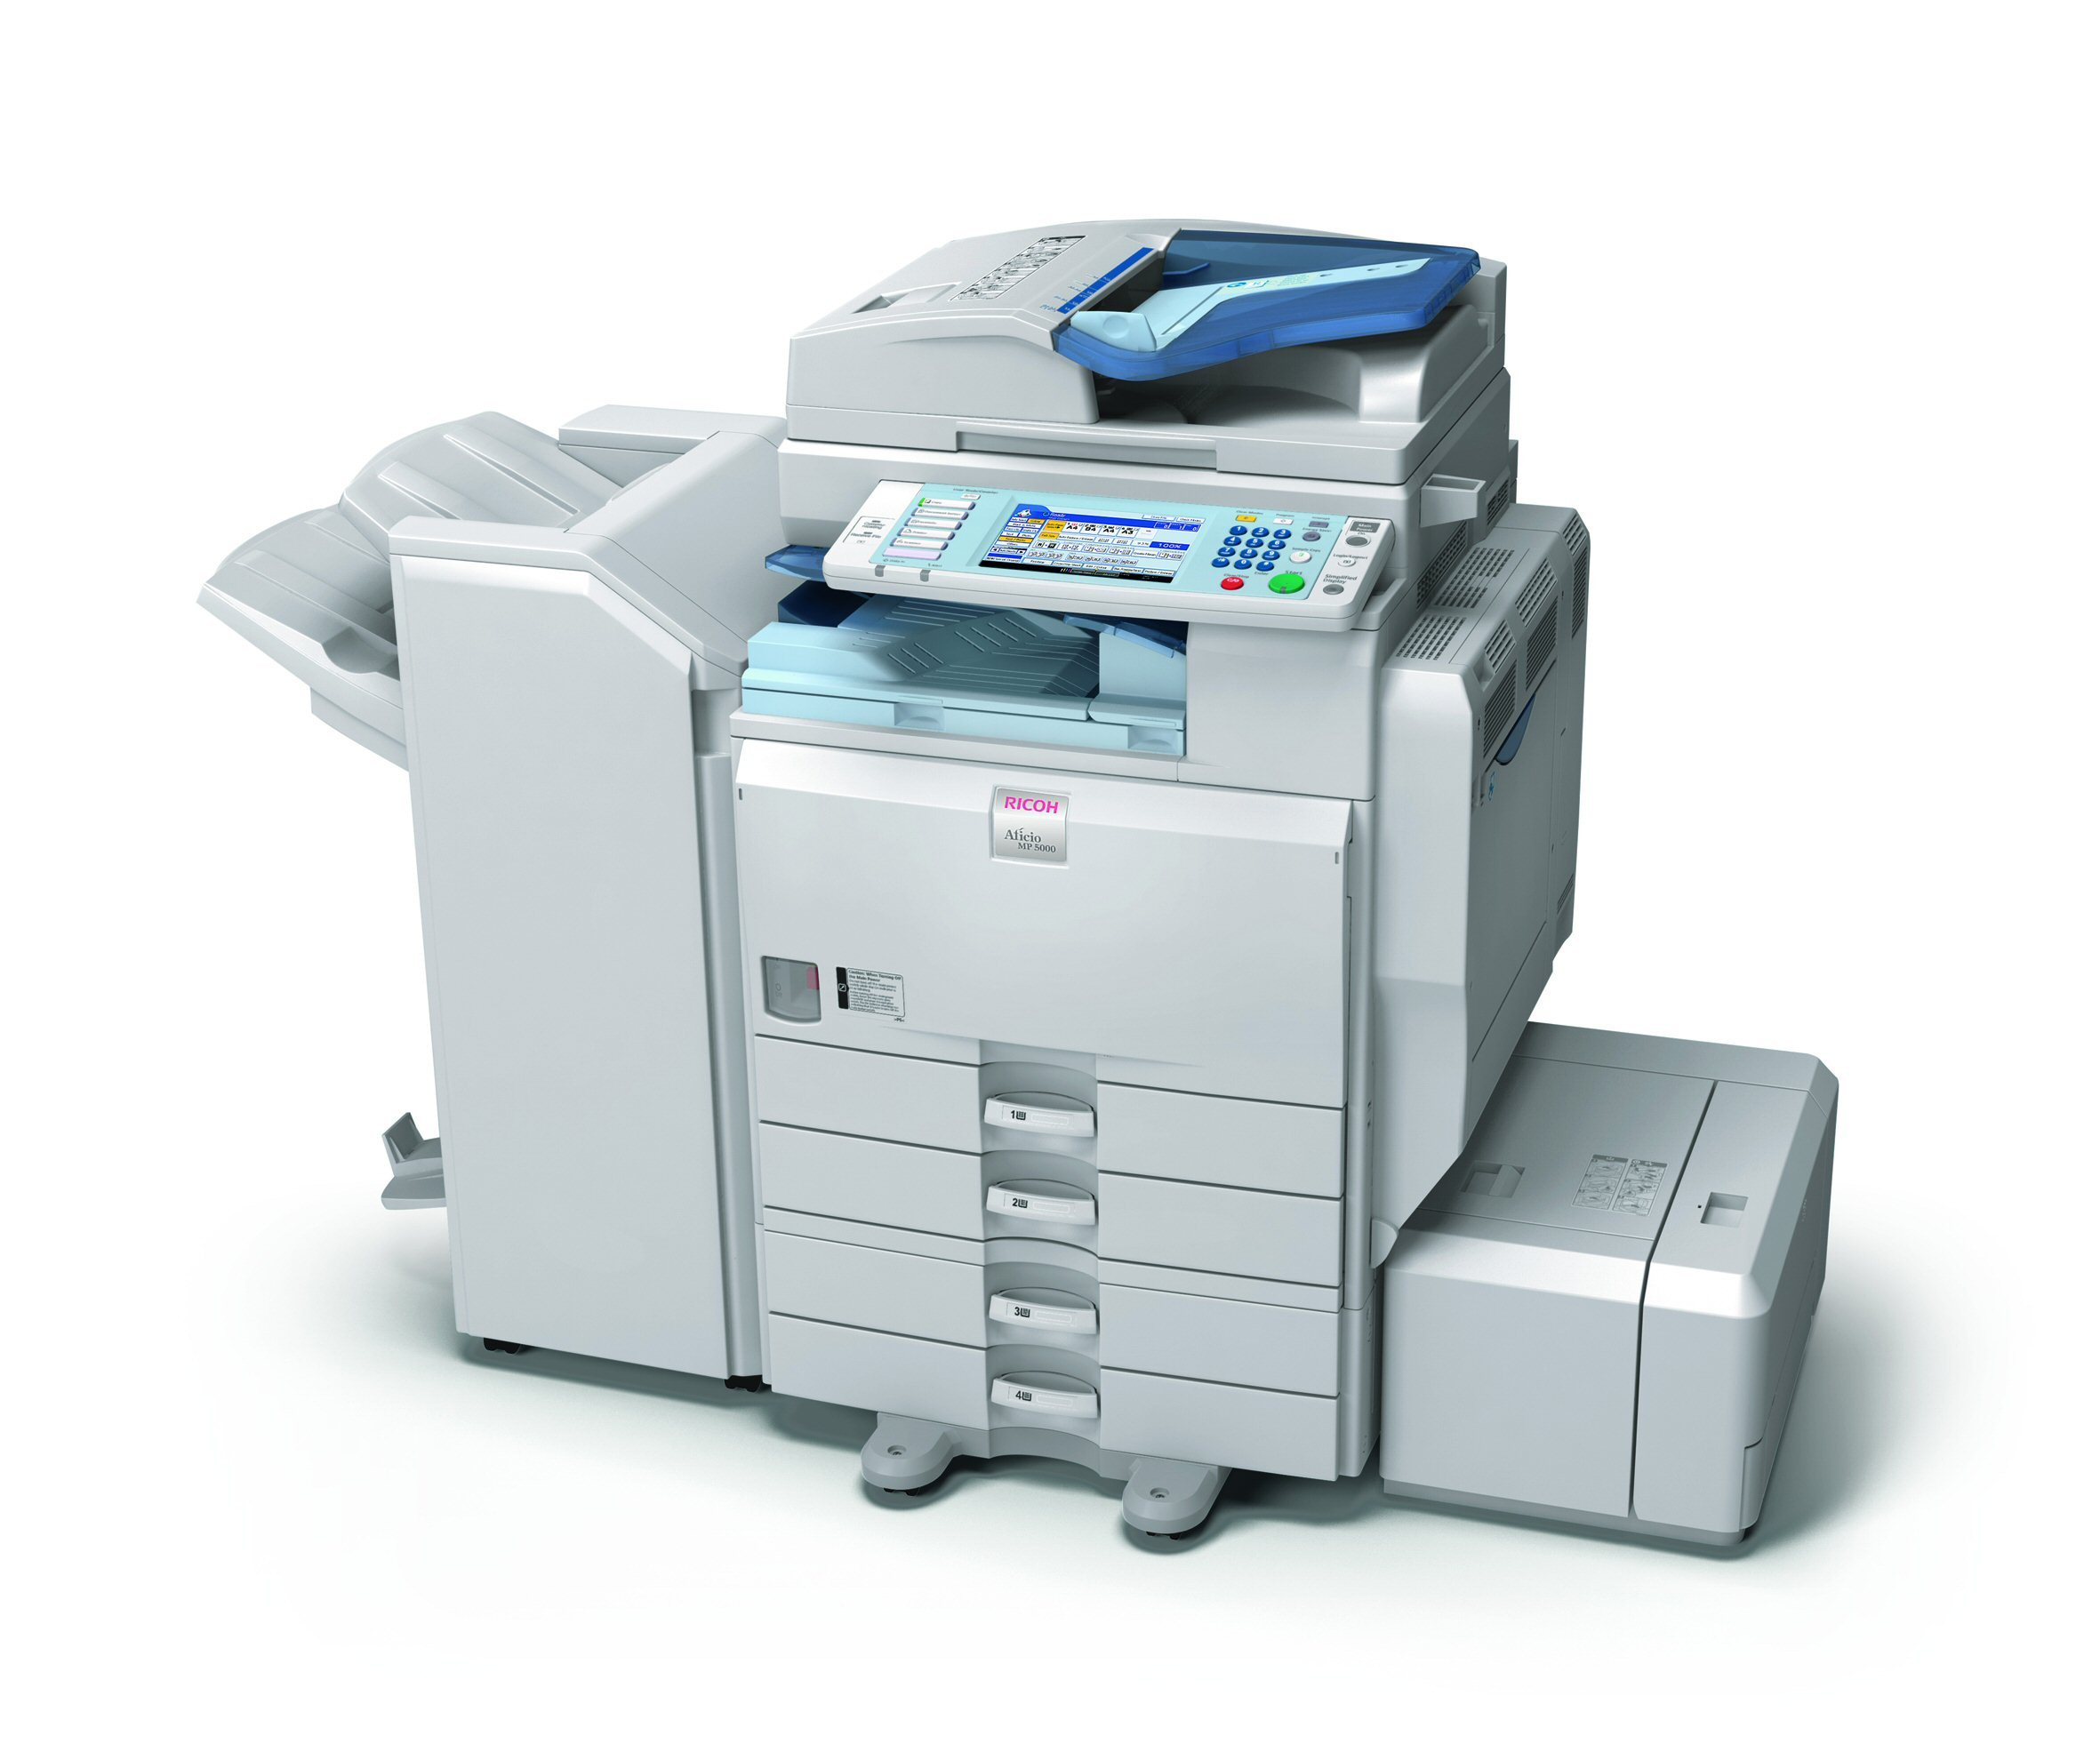 Ricoh Aficio MP 5000SPF